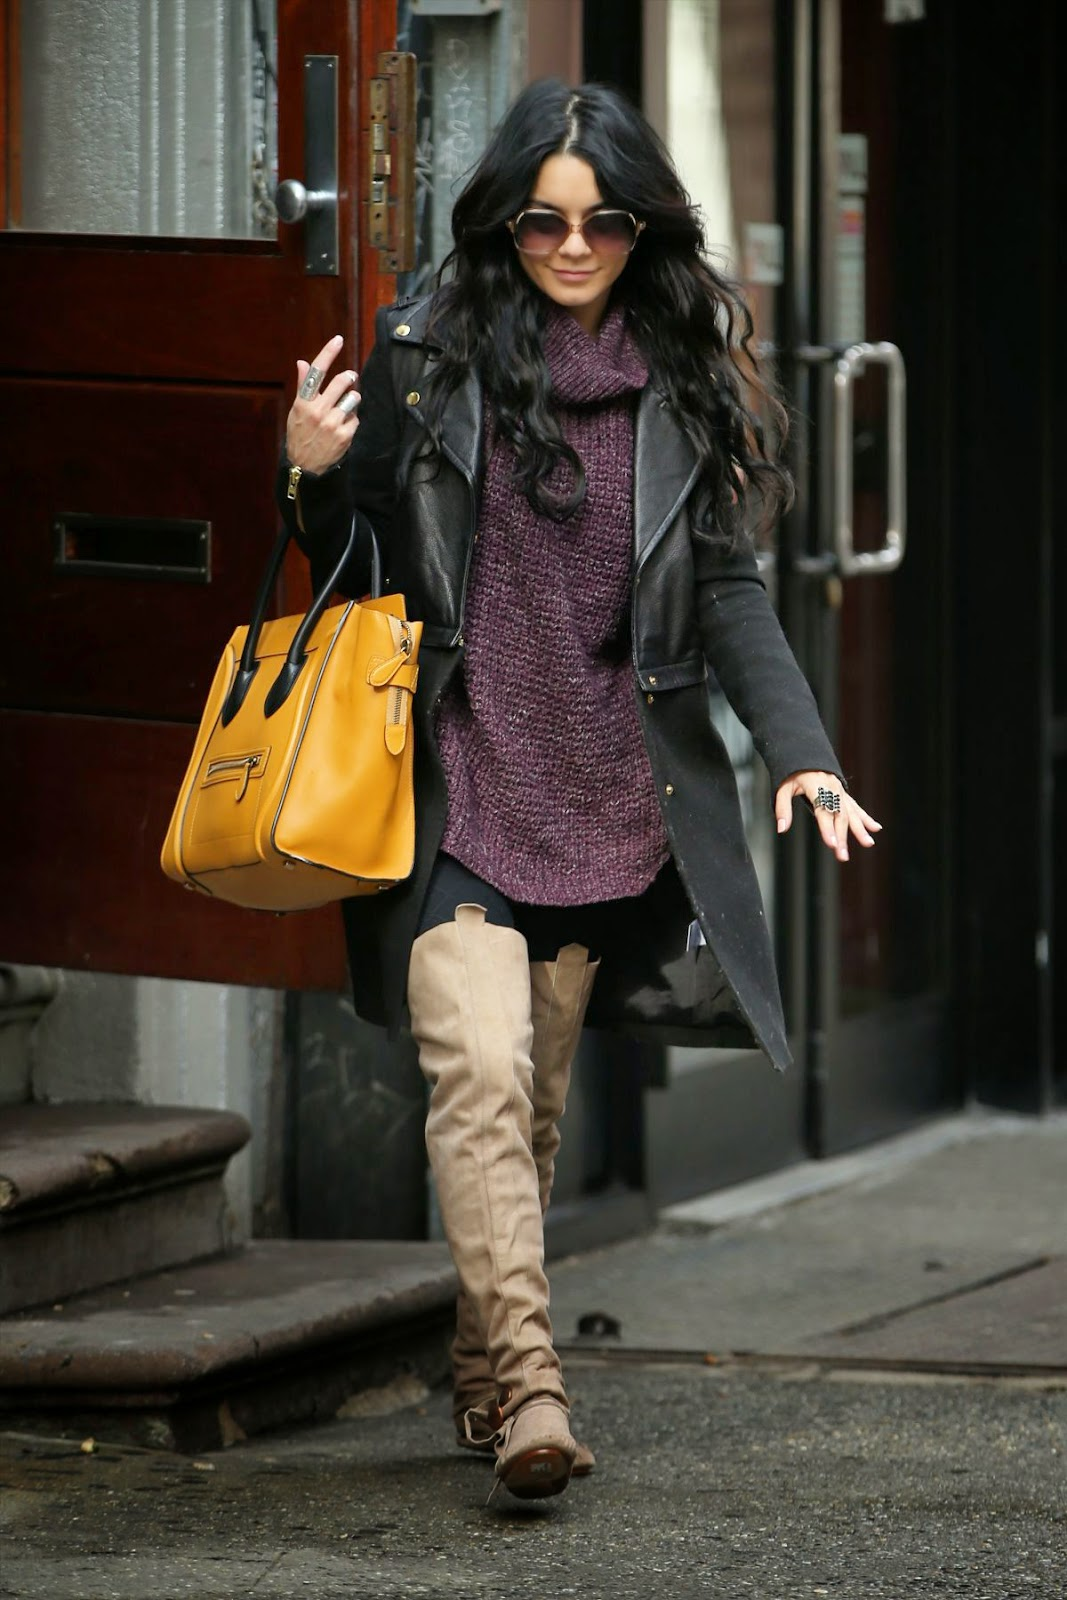 Actress, Singer @ Vanessa Hudgens Out And About In New York